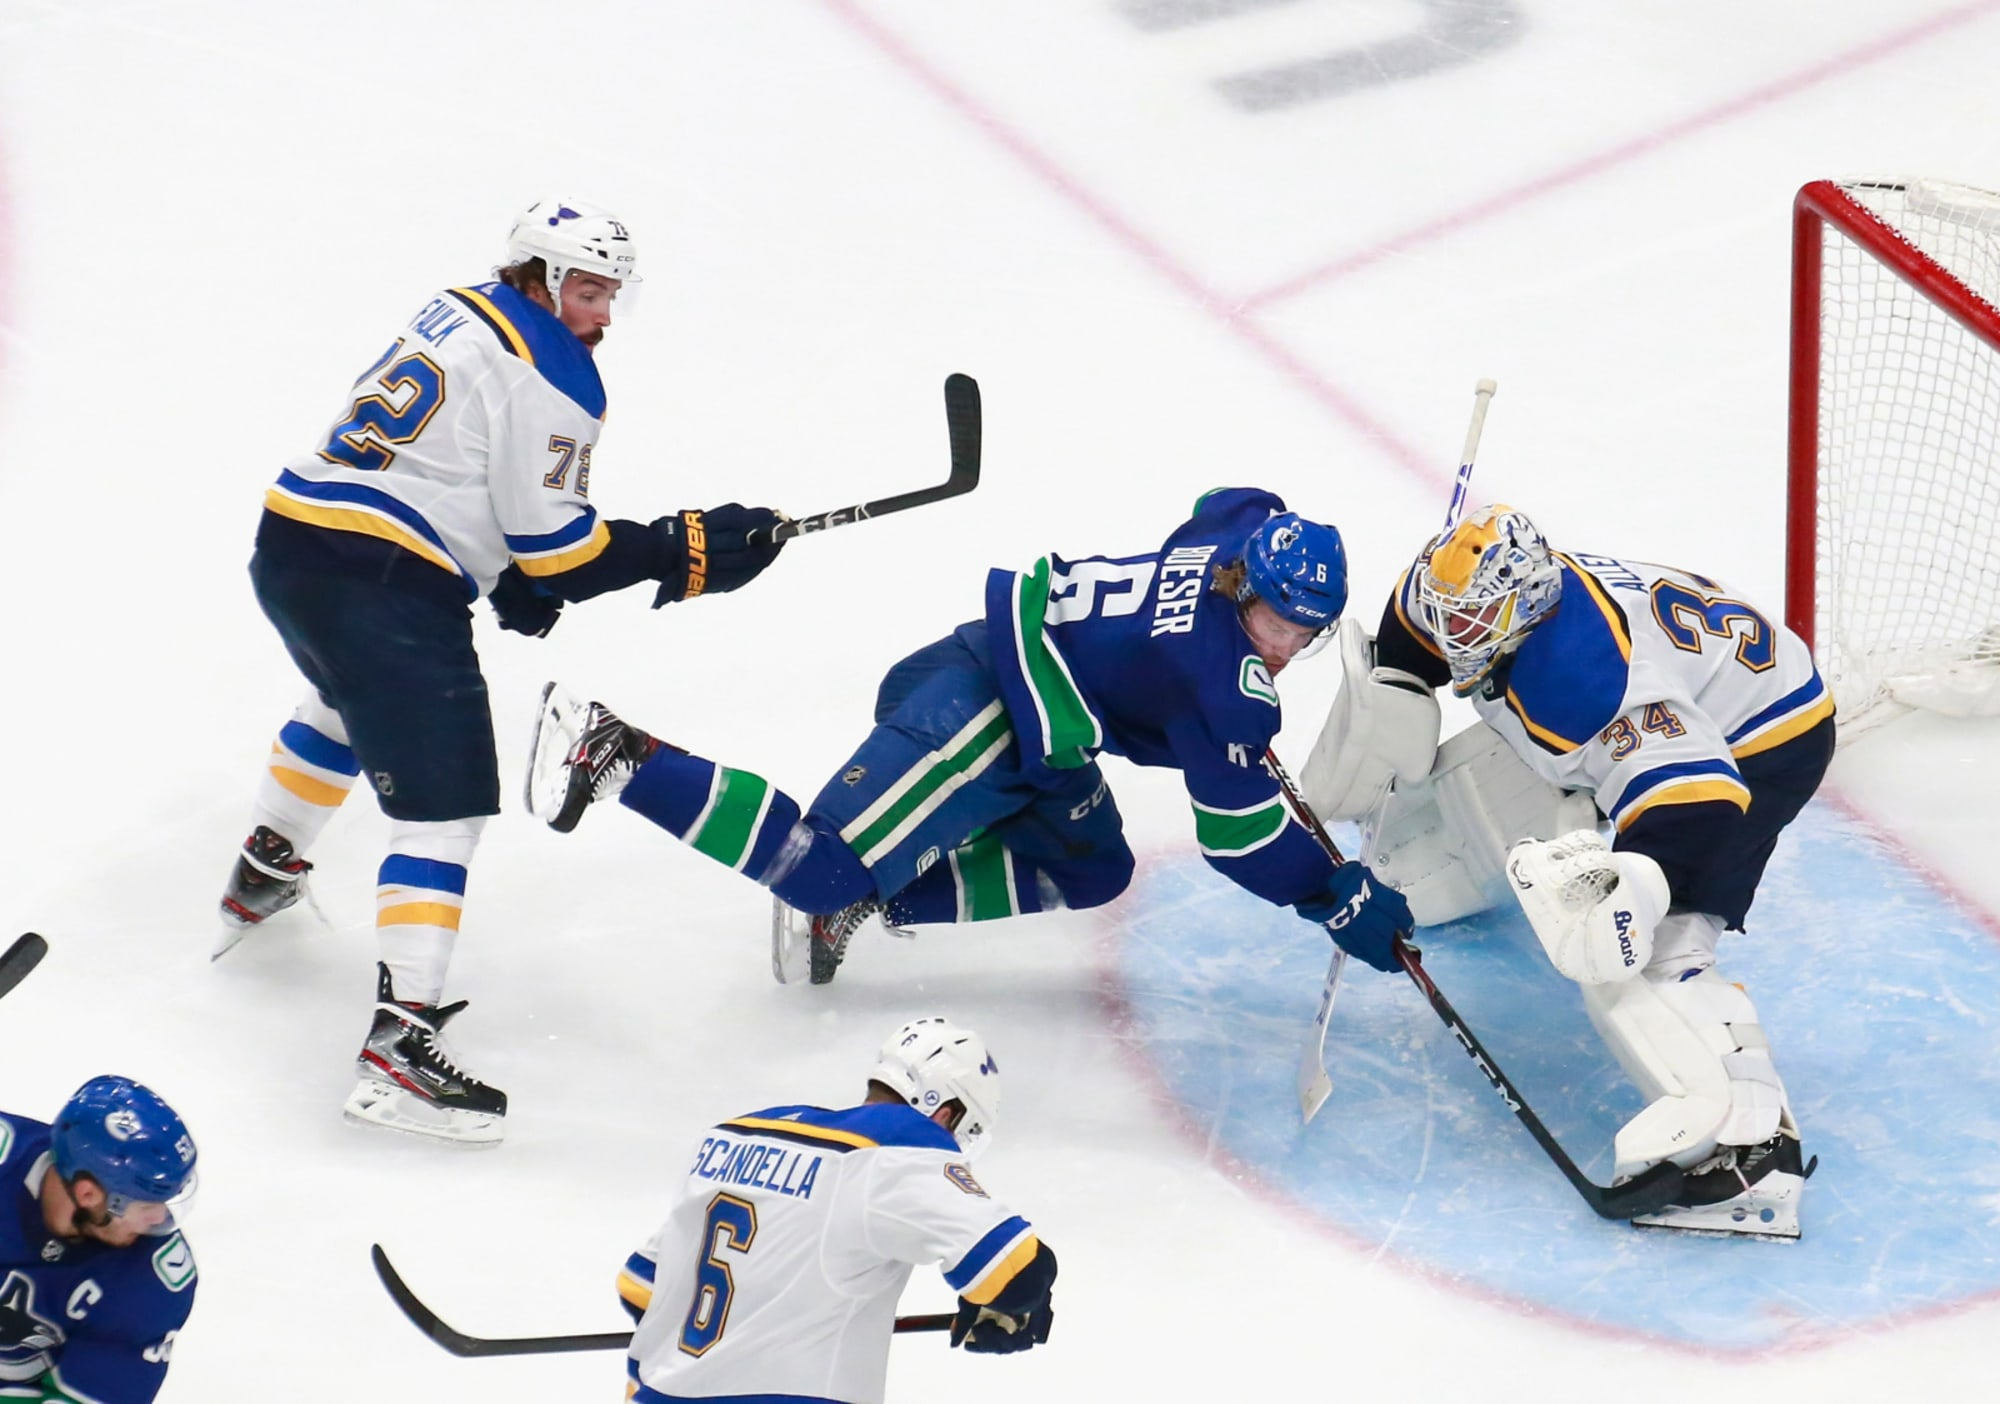 St. Louis Blues Defensive Pairings Completely Up In The Air